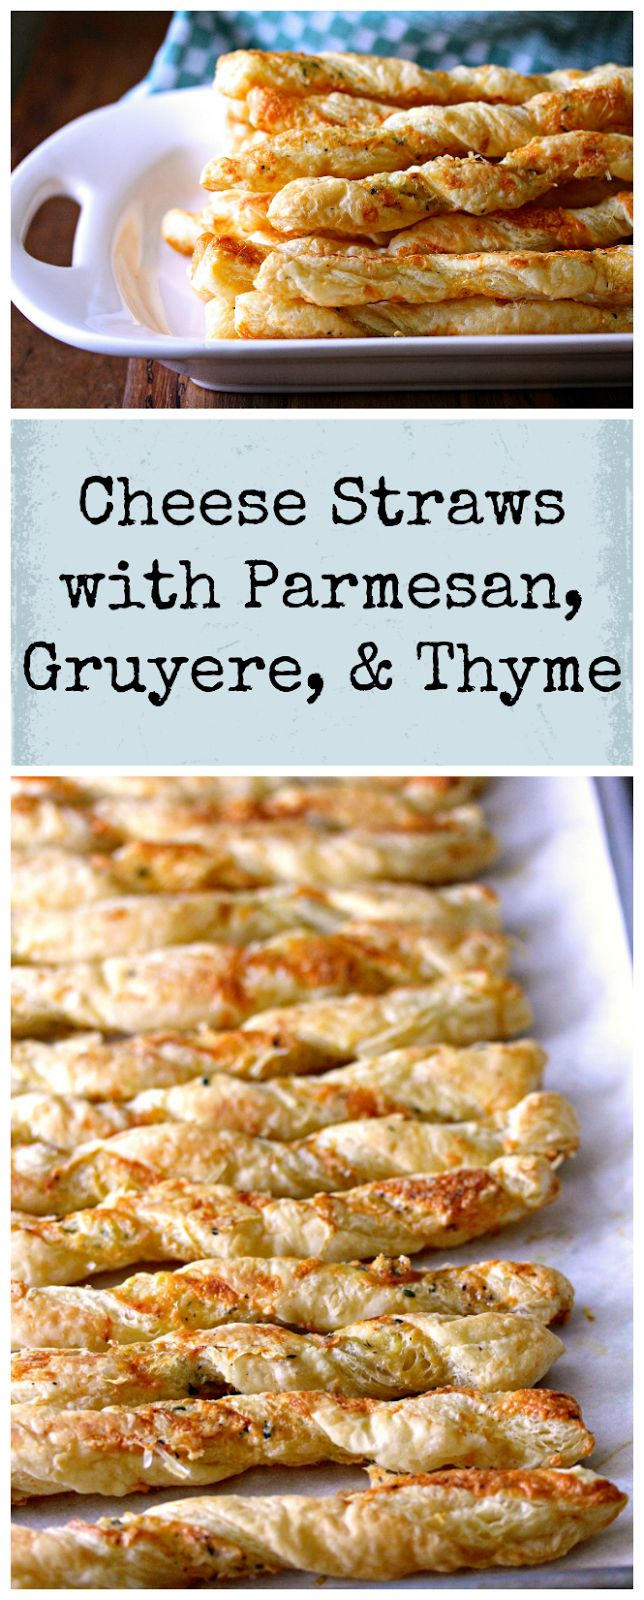 These Cheese Straws with Parmesan, Gruyere, and Thyme are a wonderful ...